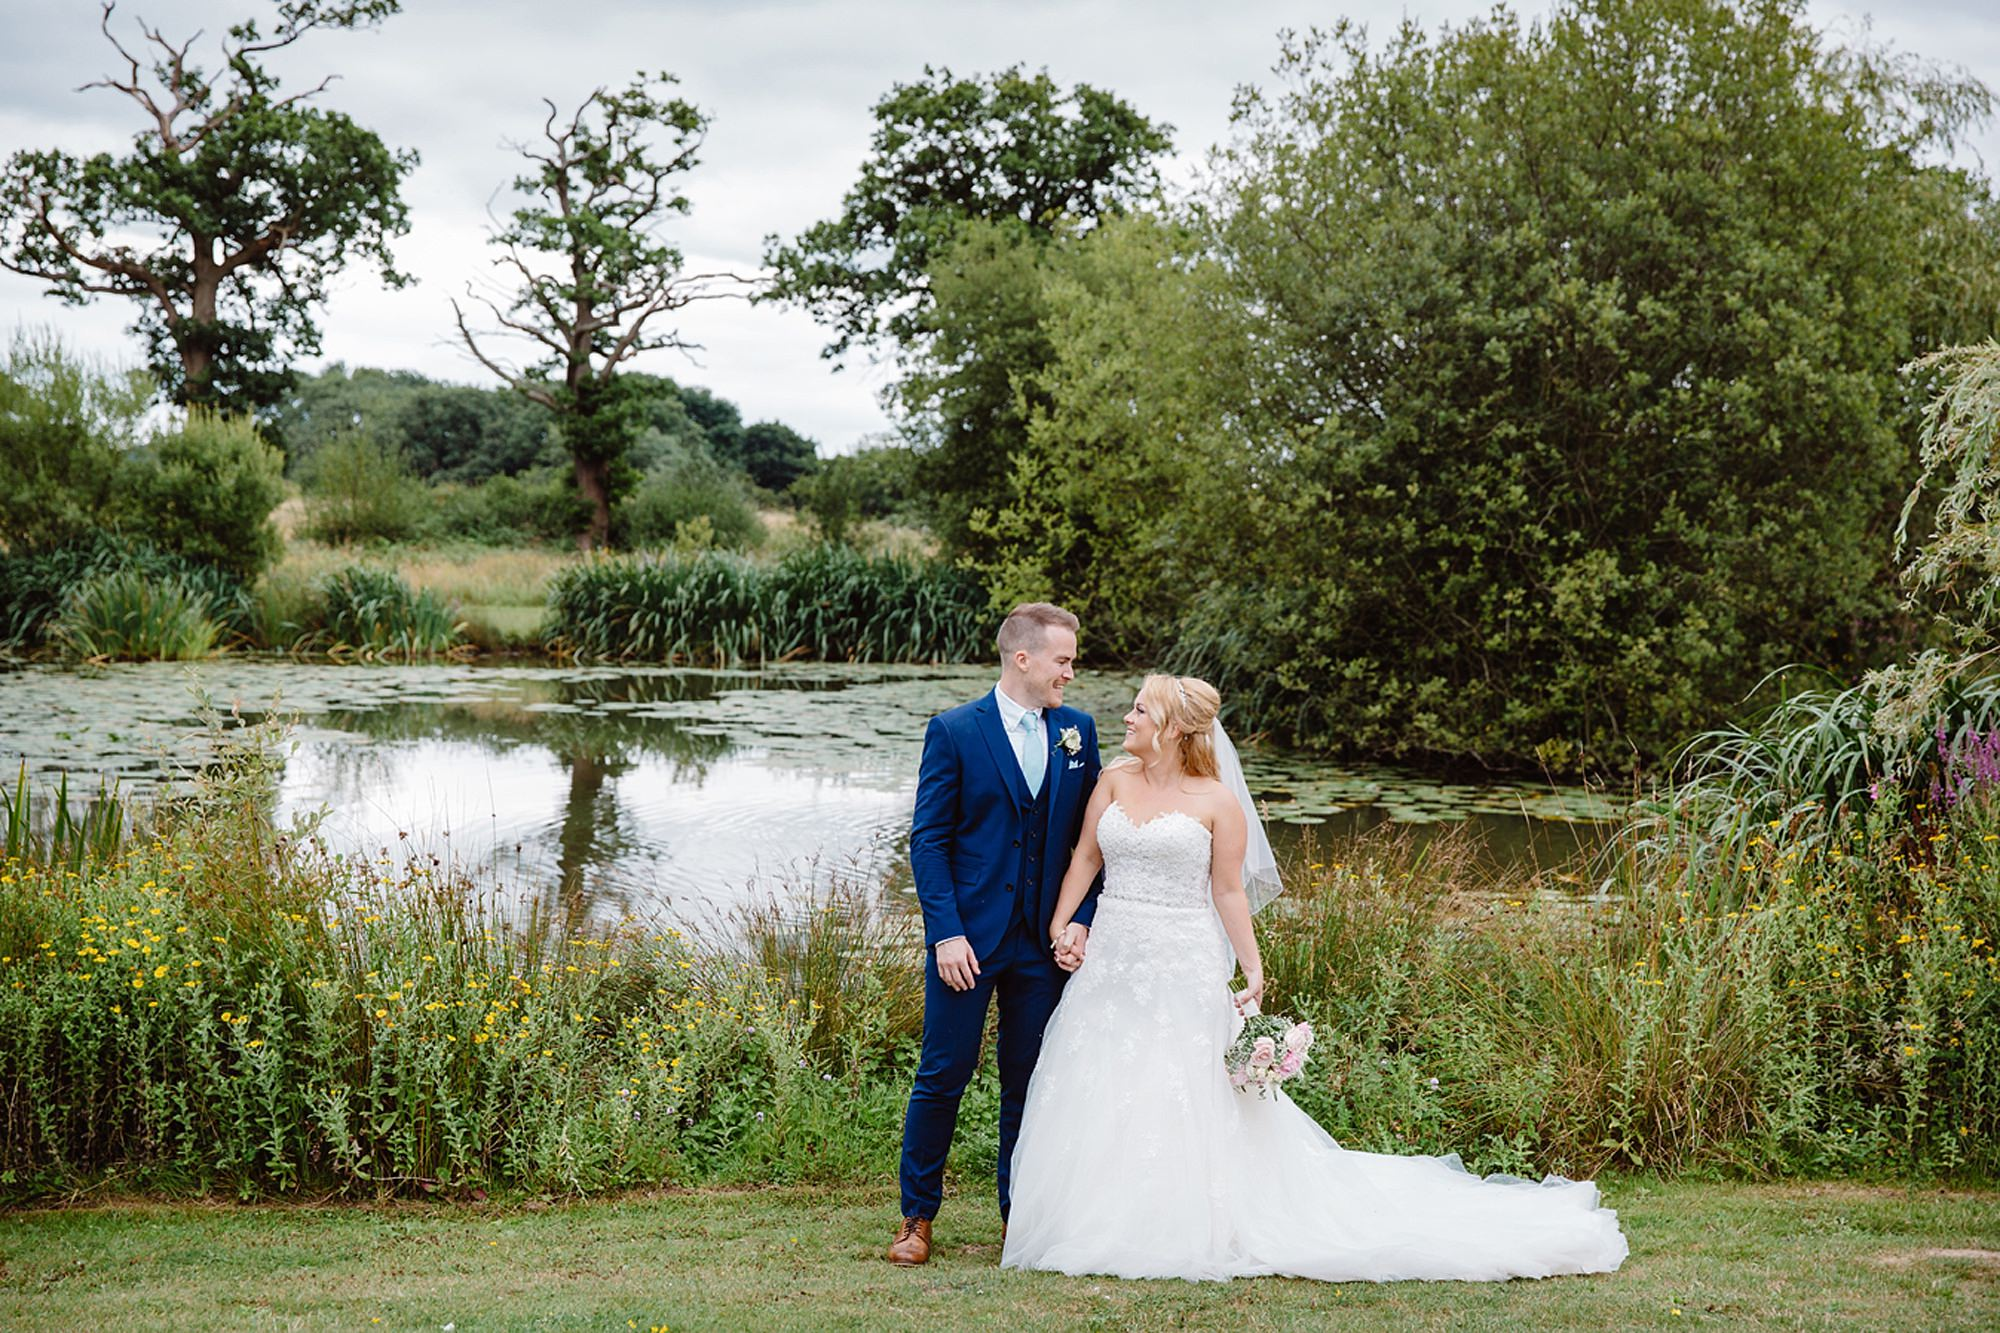 Old Greens Barn Newdigate wedding photography bride and groom at lake